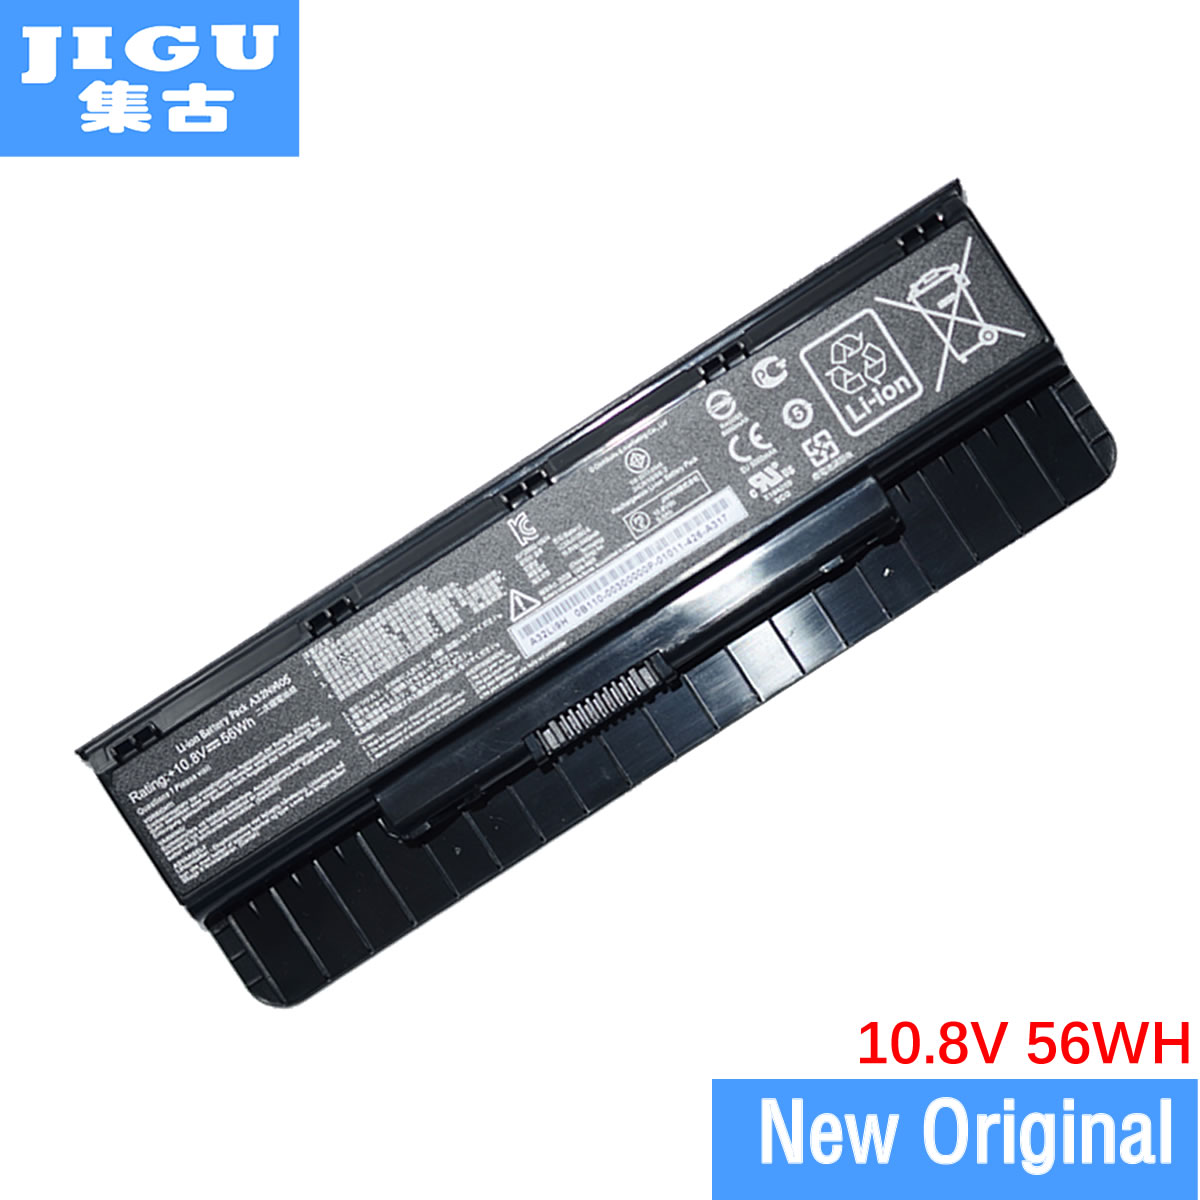 JIGU A32LI9H A32N1405 Original Laptop Battery For Asus G551 G551J G58 G771 GL551 GL771 N551 N751 10.8V 56WHJIGU A32LI9H A32N1405 Original Laptop Battery For Asus G551 G551J G58 G771 GL551 GL771 N551 N751 10.8V 56WH